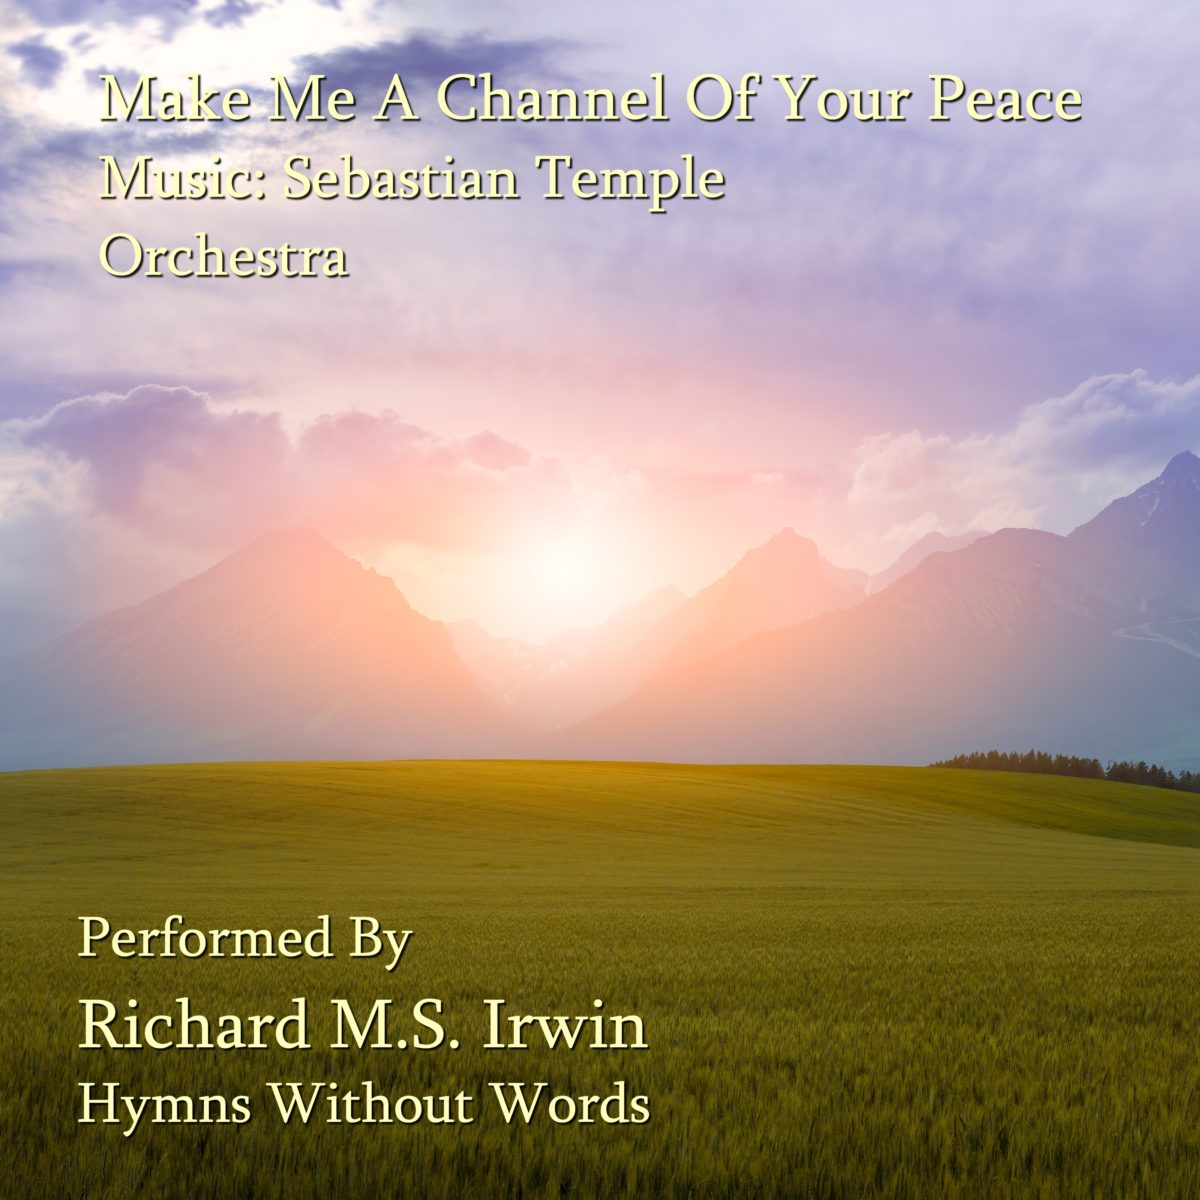 Make Me A Channel Of Your Peace (Orchestra, 3 Verses)